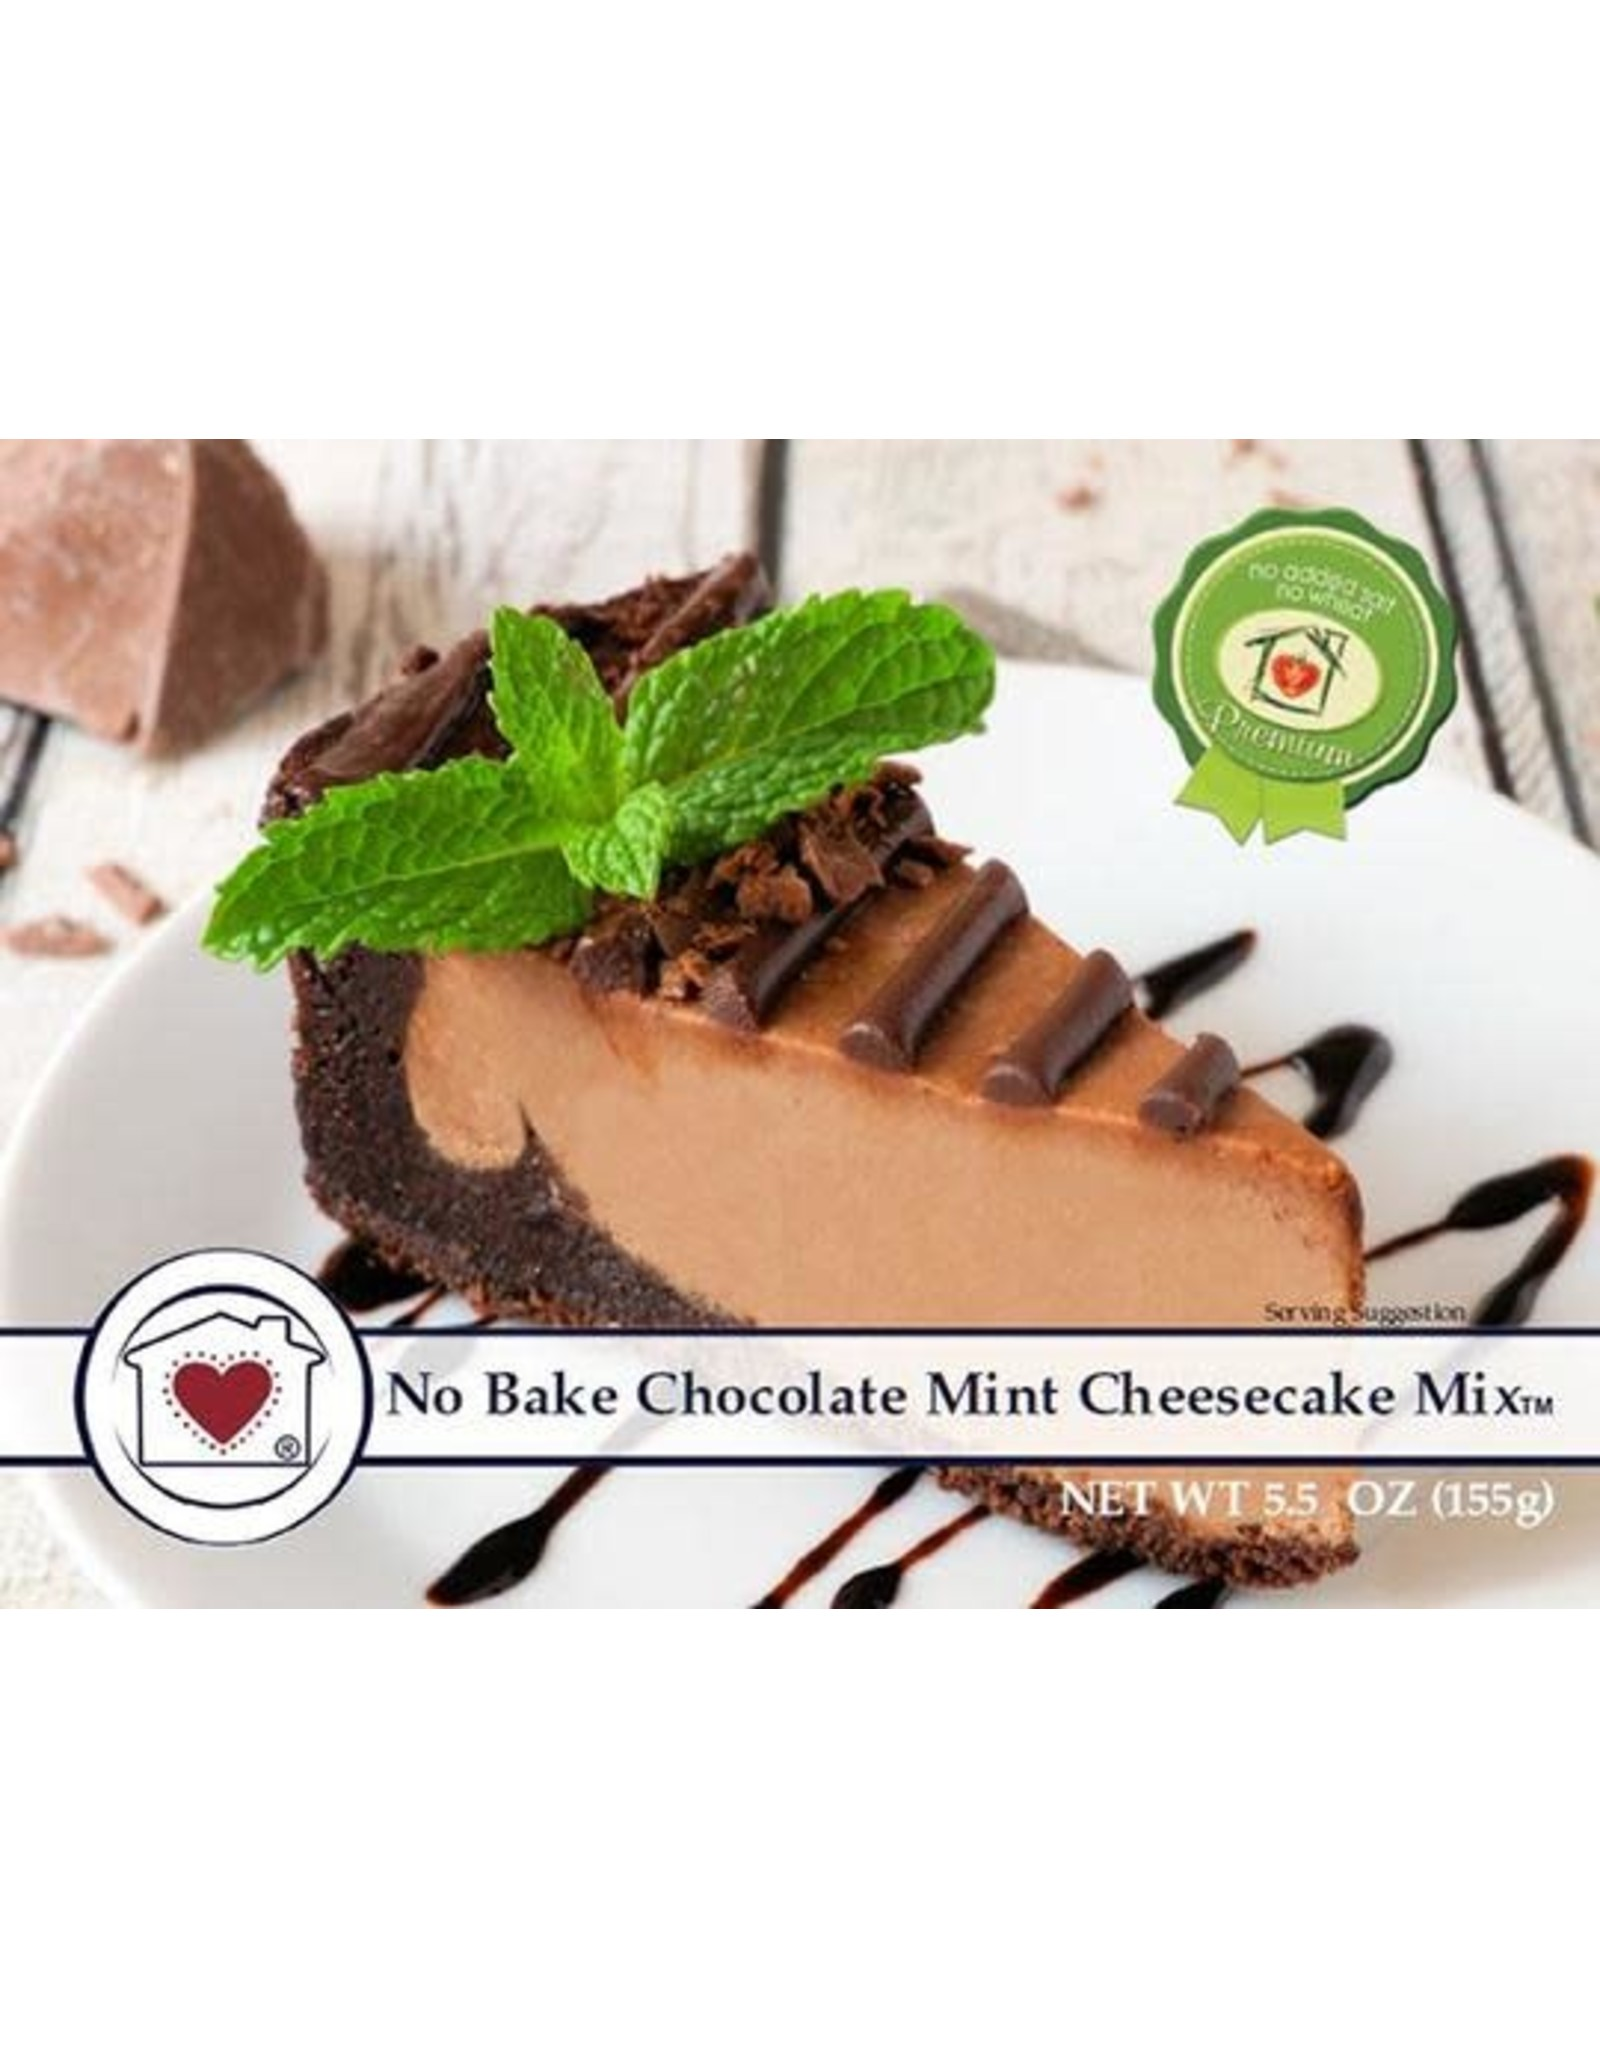 Country Home Creations No Bake Chocolate Mint Cheesecake Mix, 5.5 oz